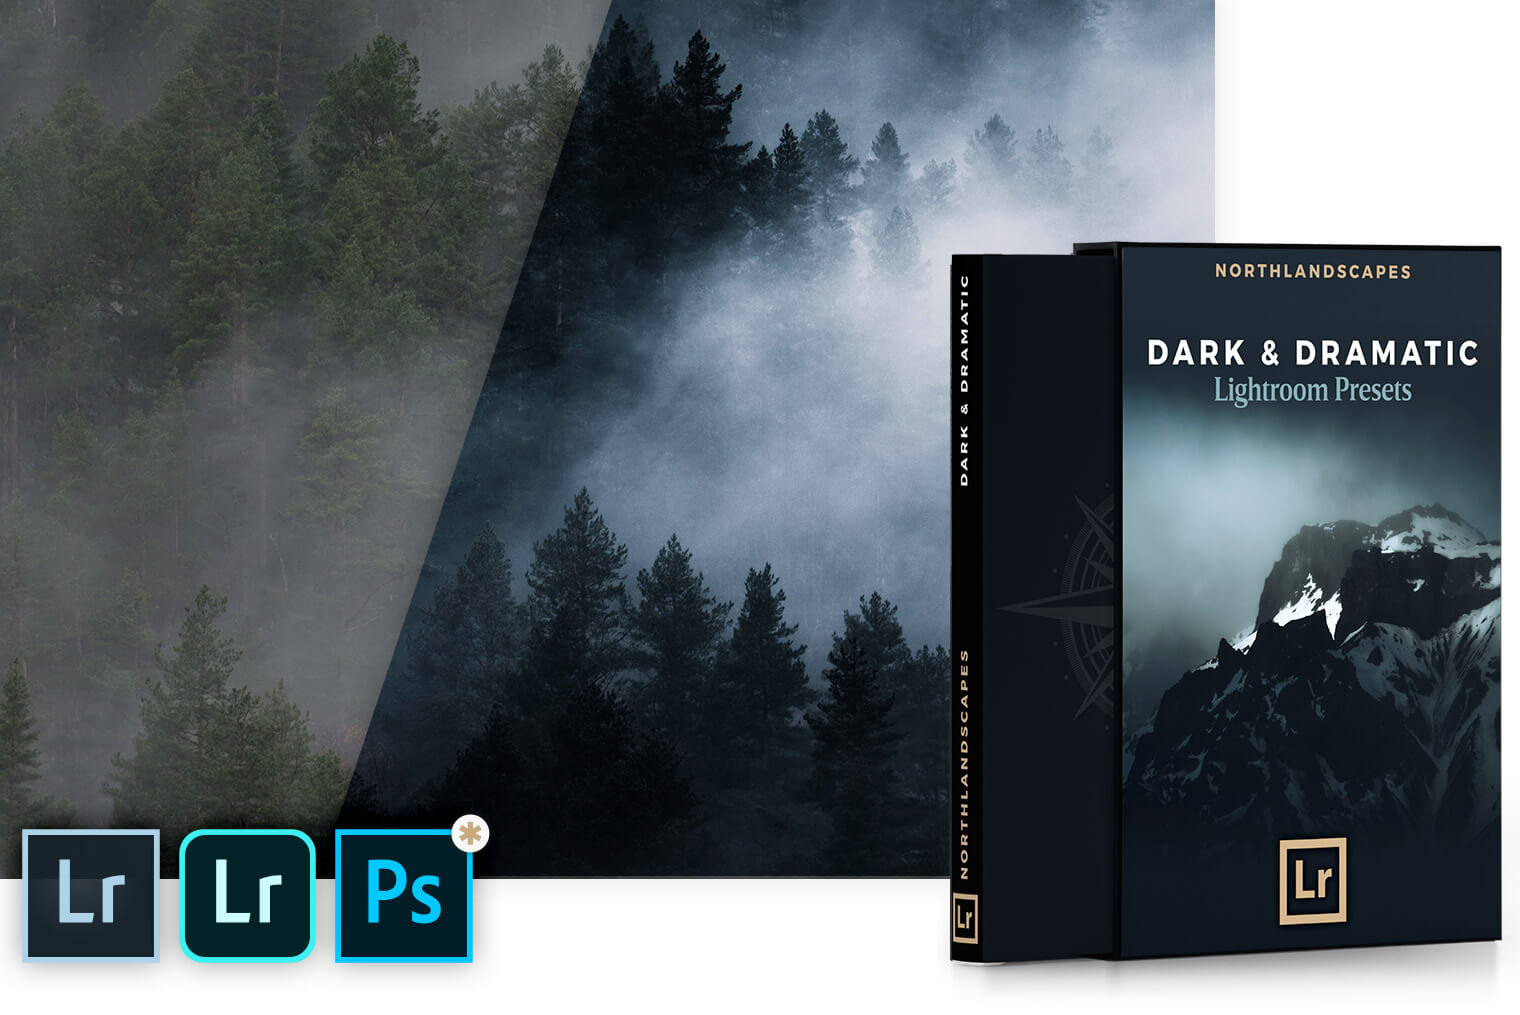 Dark and Dramatic Lightroom Presets for Fine Art Landscape Photography